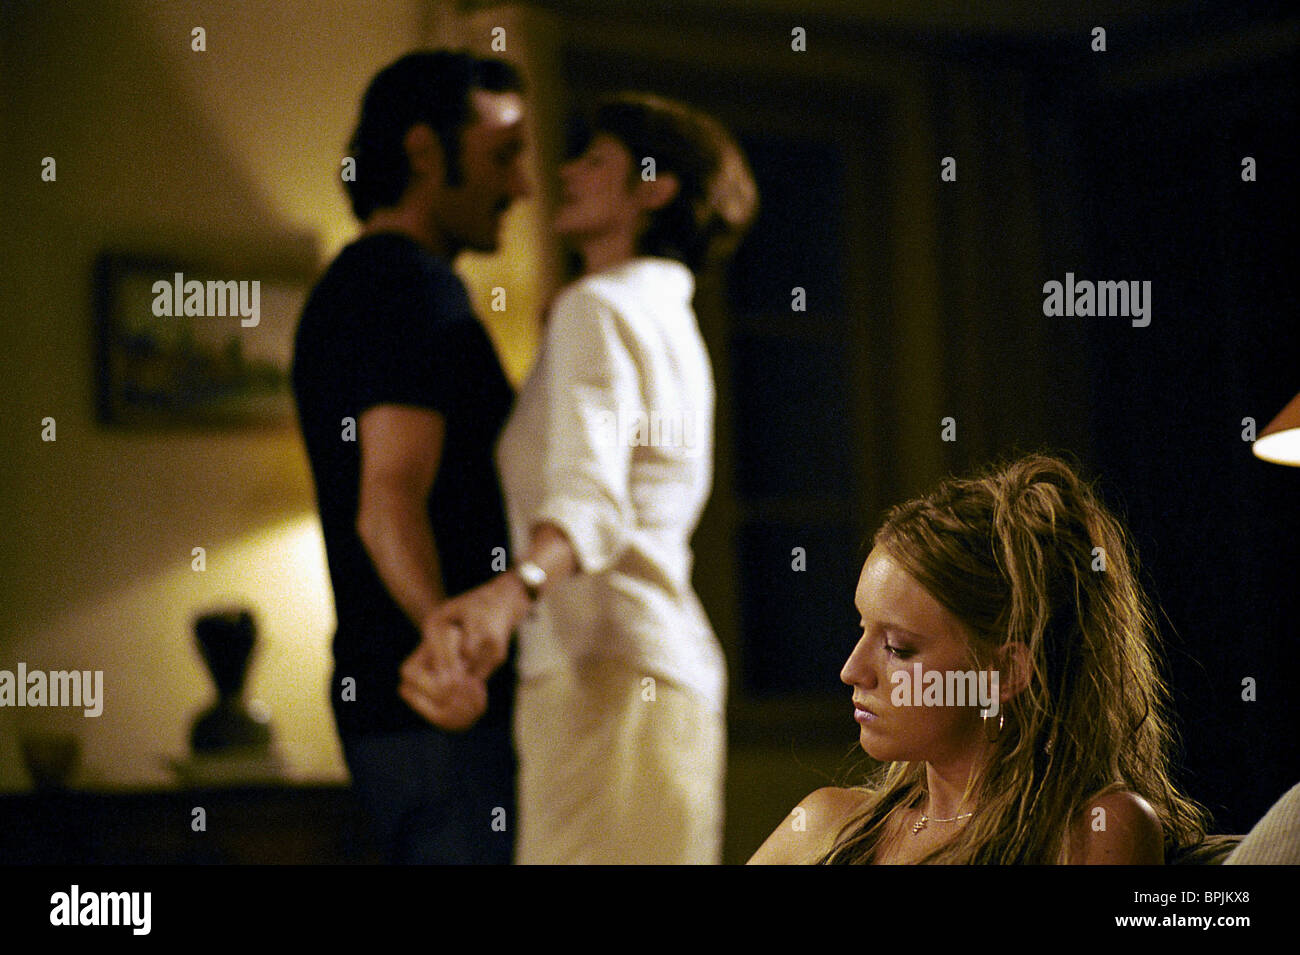 Jean marie lamour charlotte rampling ludivine sagnier swimming pool stock photo 31143568 alamy for Charlotte rampling the swimming pool